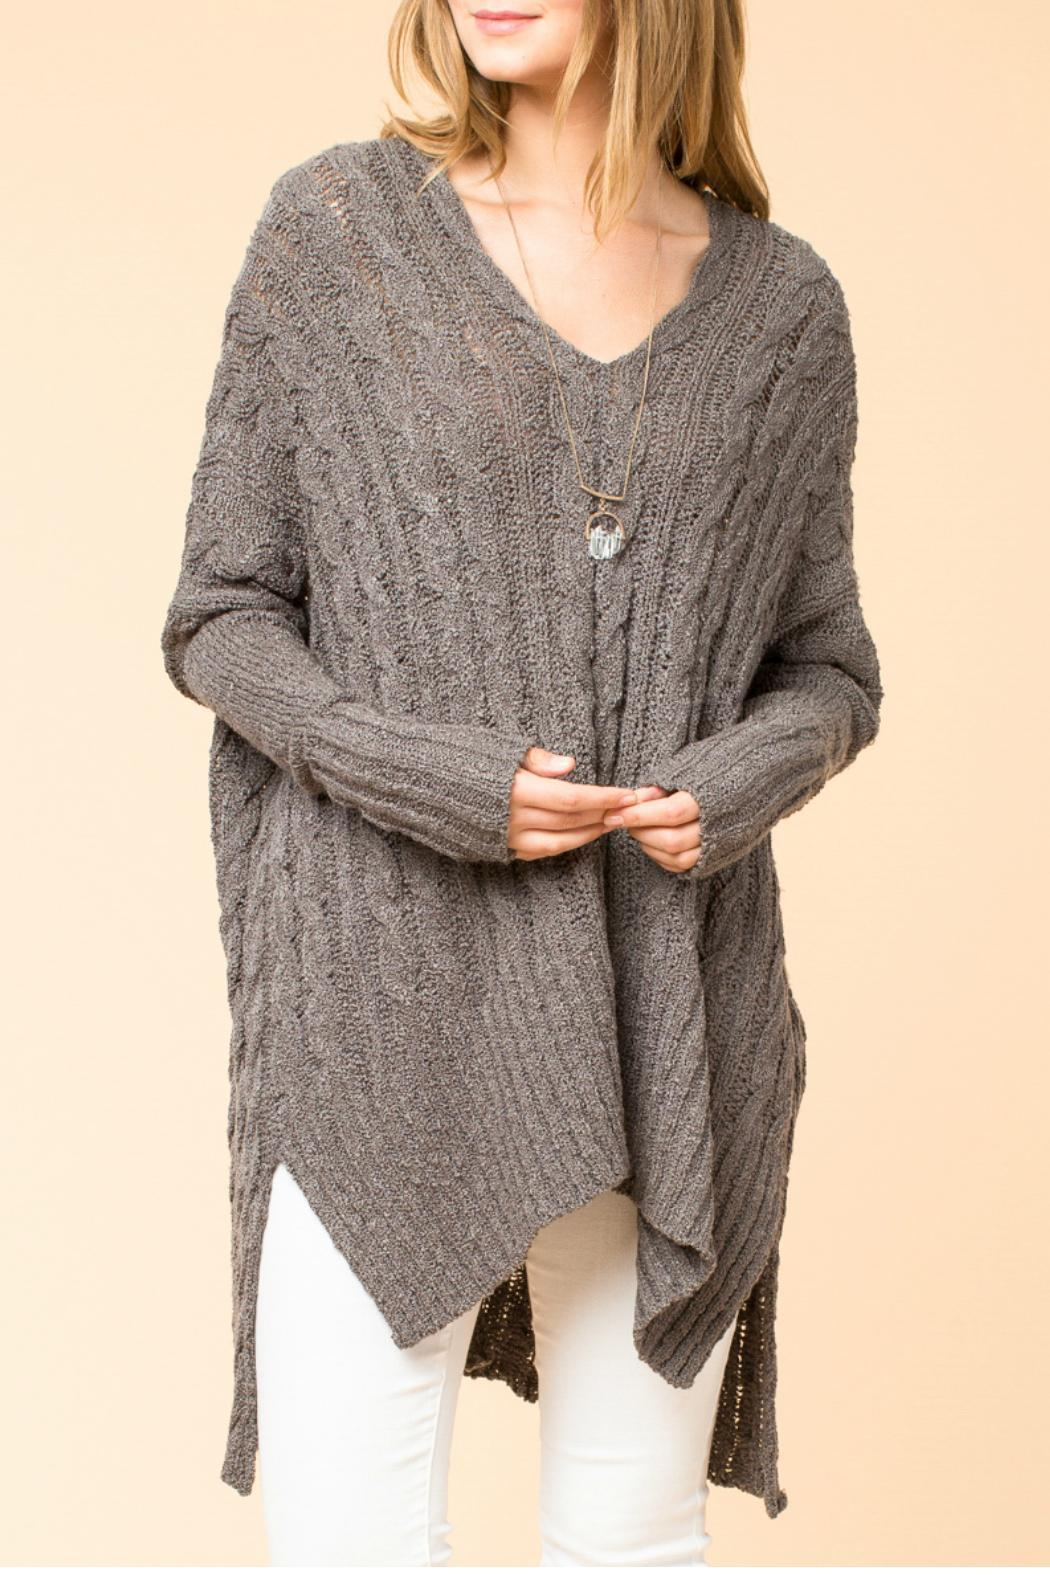 HYFVE Oversized Cable Knit Sweater from Branford by Polished ...